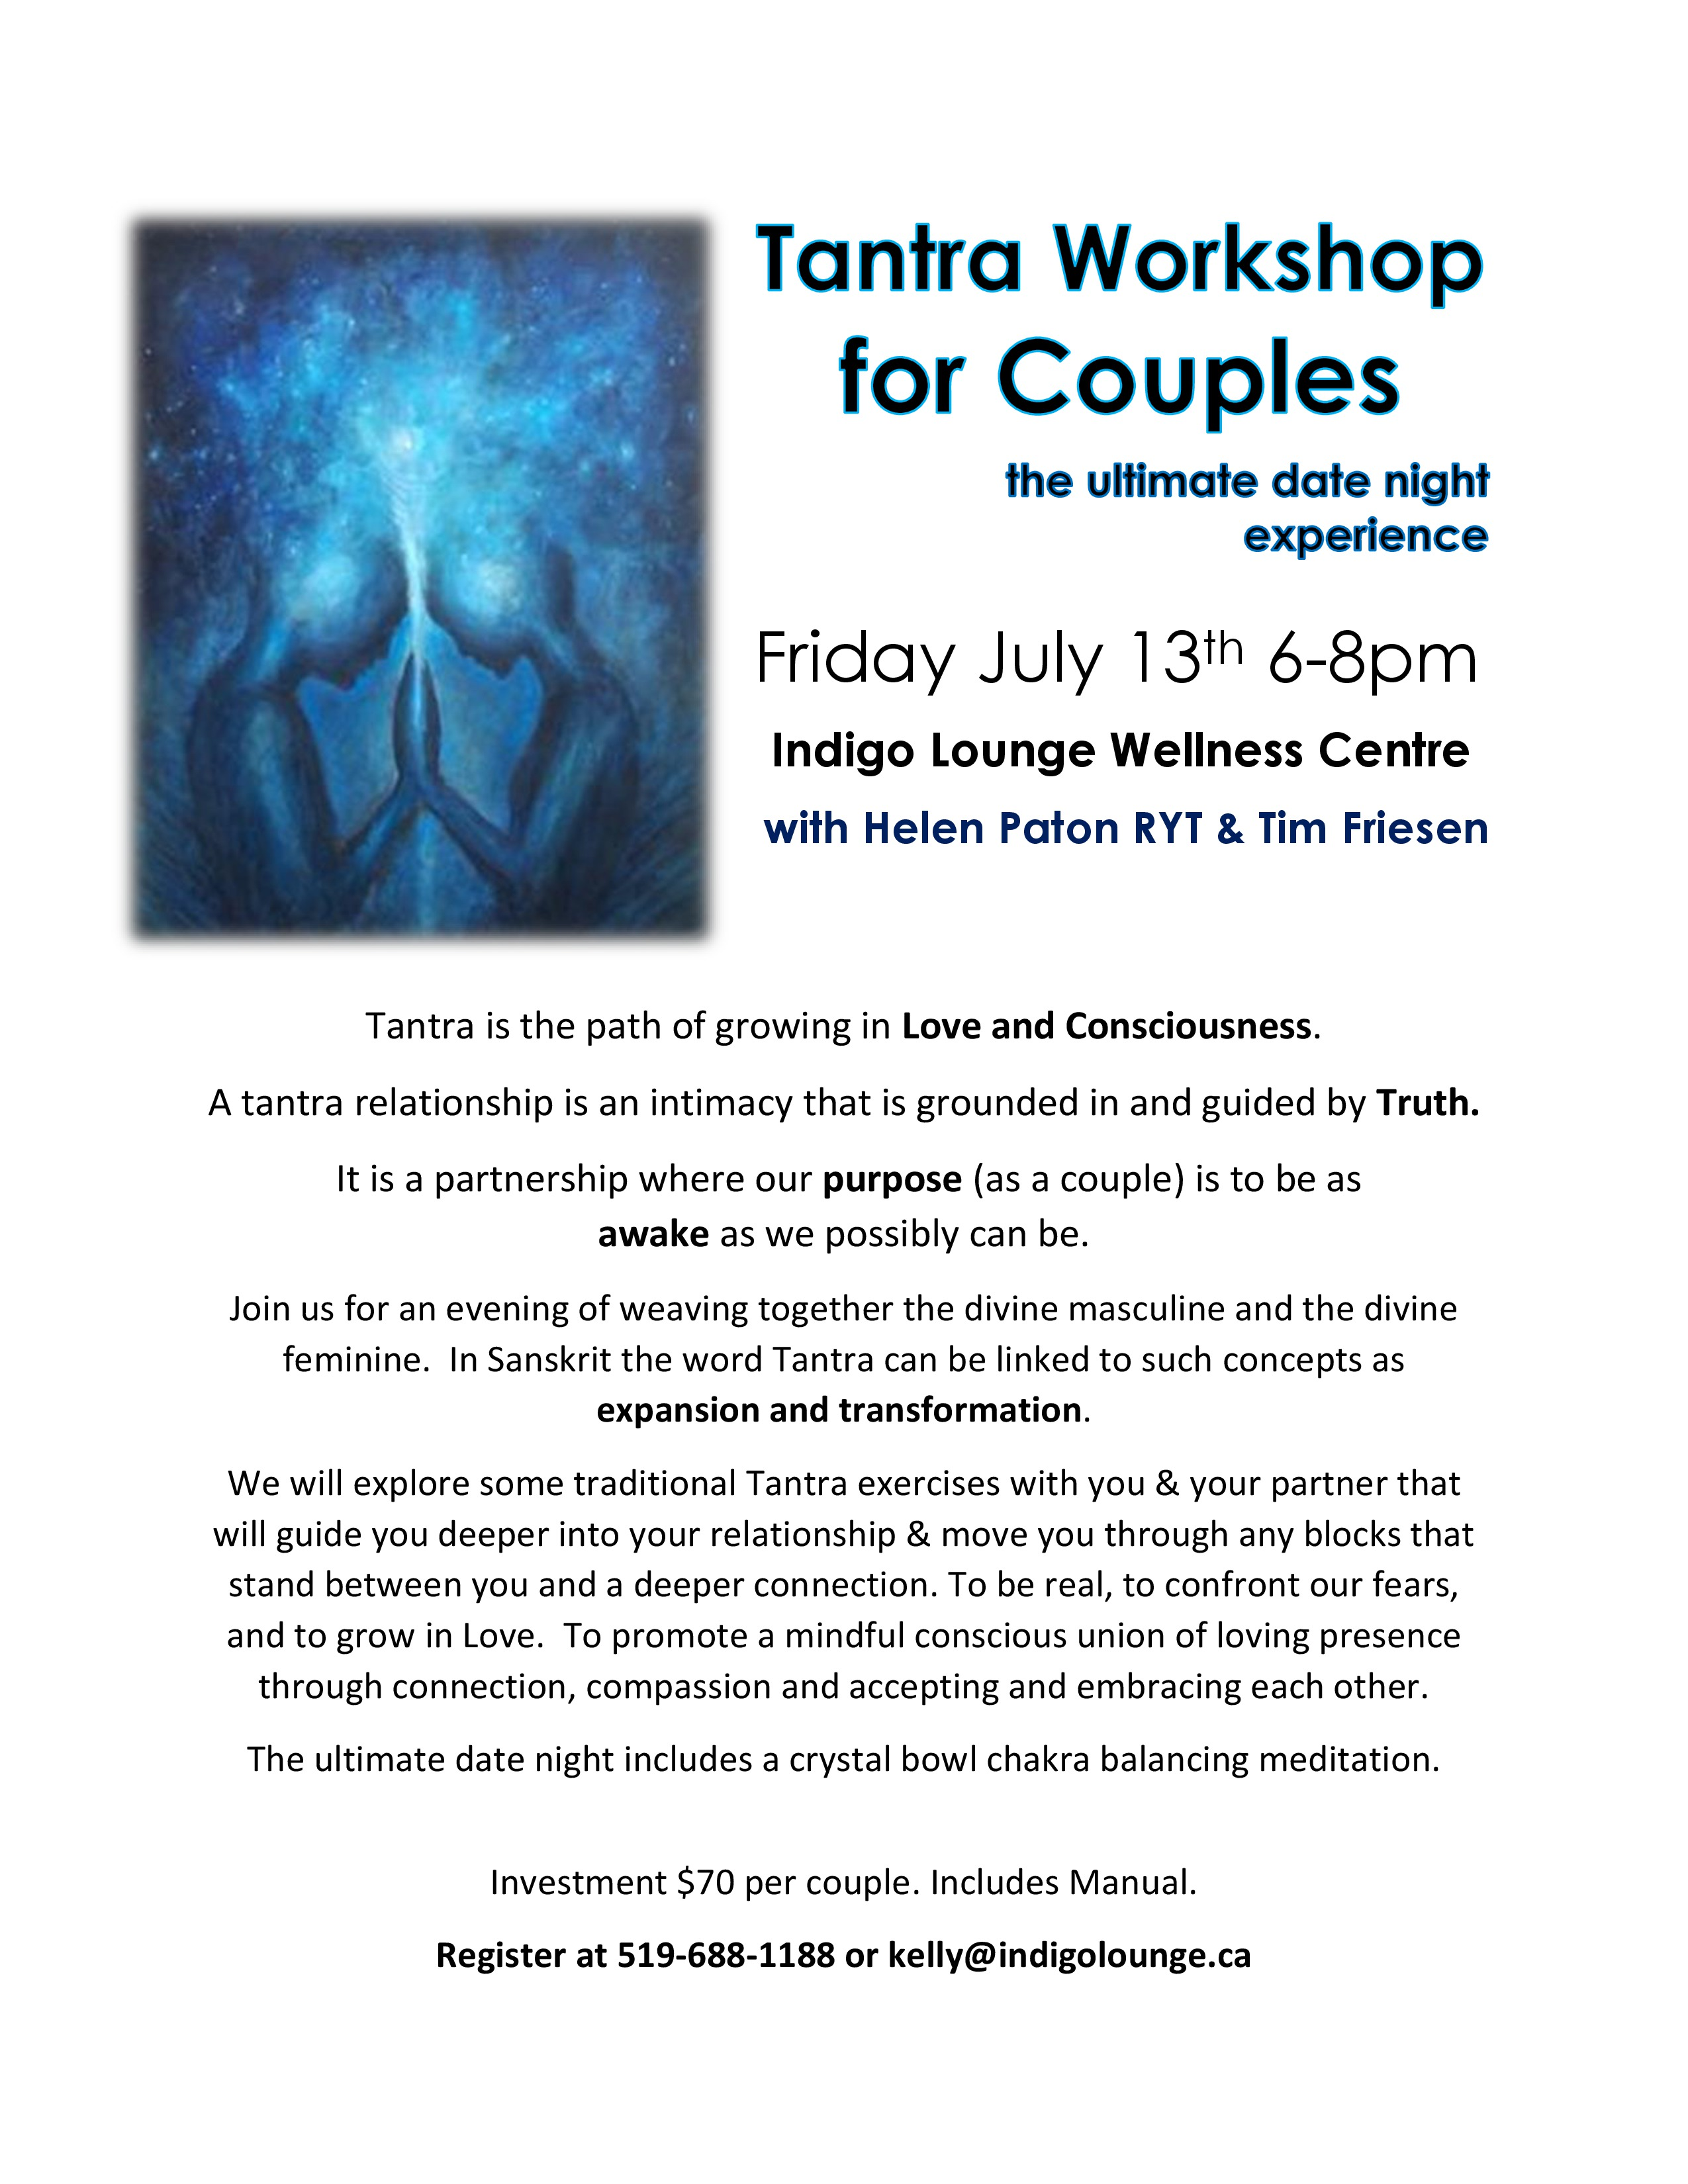 Tantra For Couples Date Night Indigolounge Ca